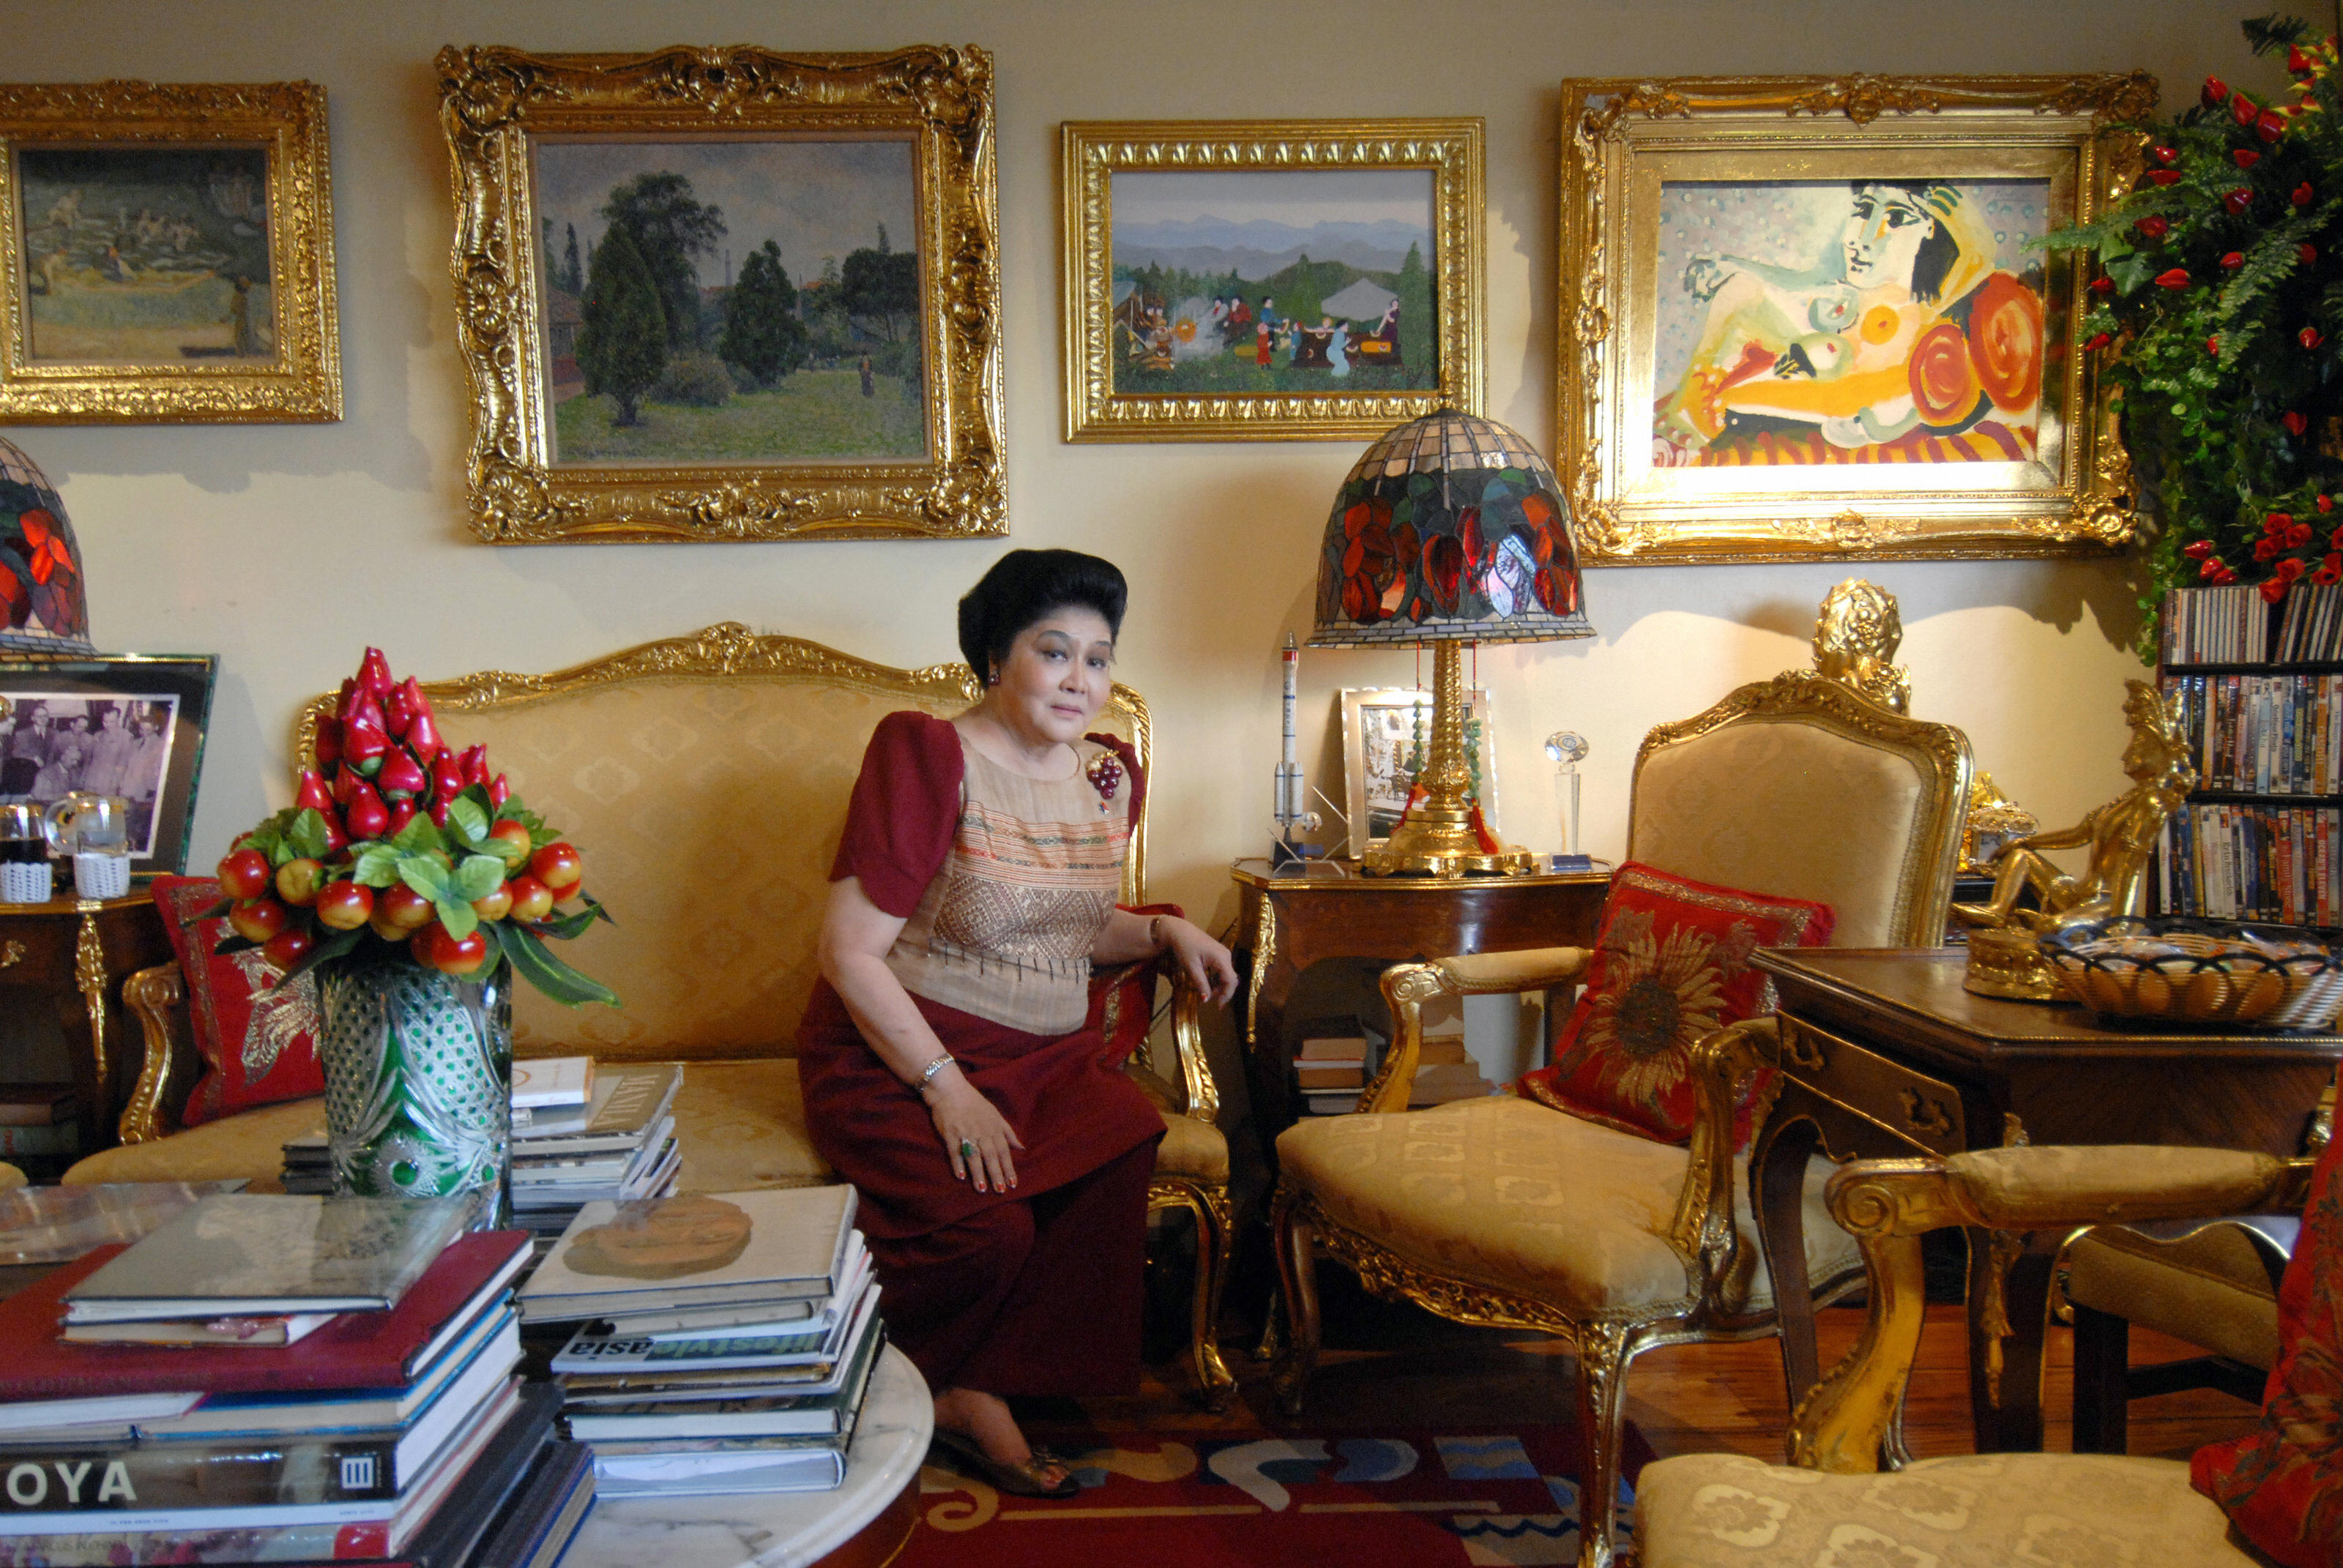 Former Philippine first lady Imelda Marcos is seen in her apartment in Manila on June 27, 2007.